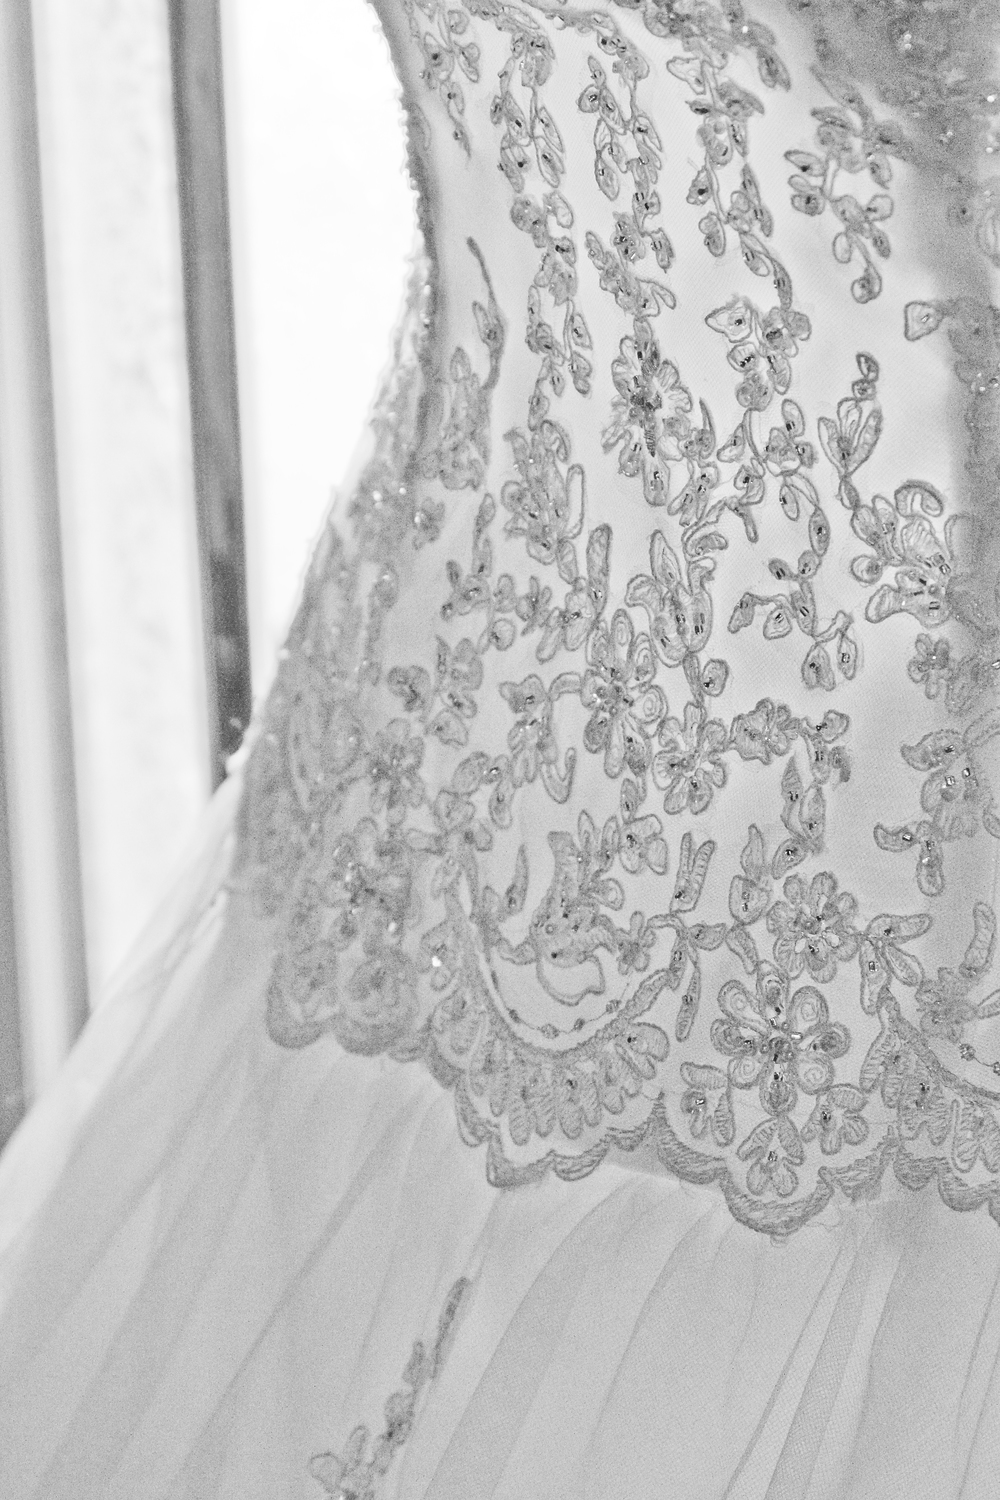 Jenn's dress had some stunning detail in the lace. © 2014 Shealyn McGee-Sarns